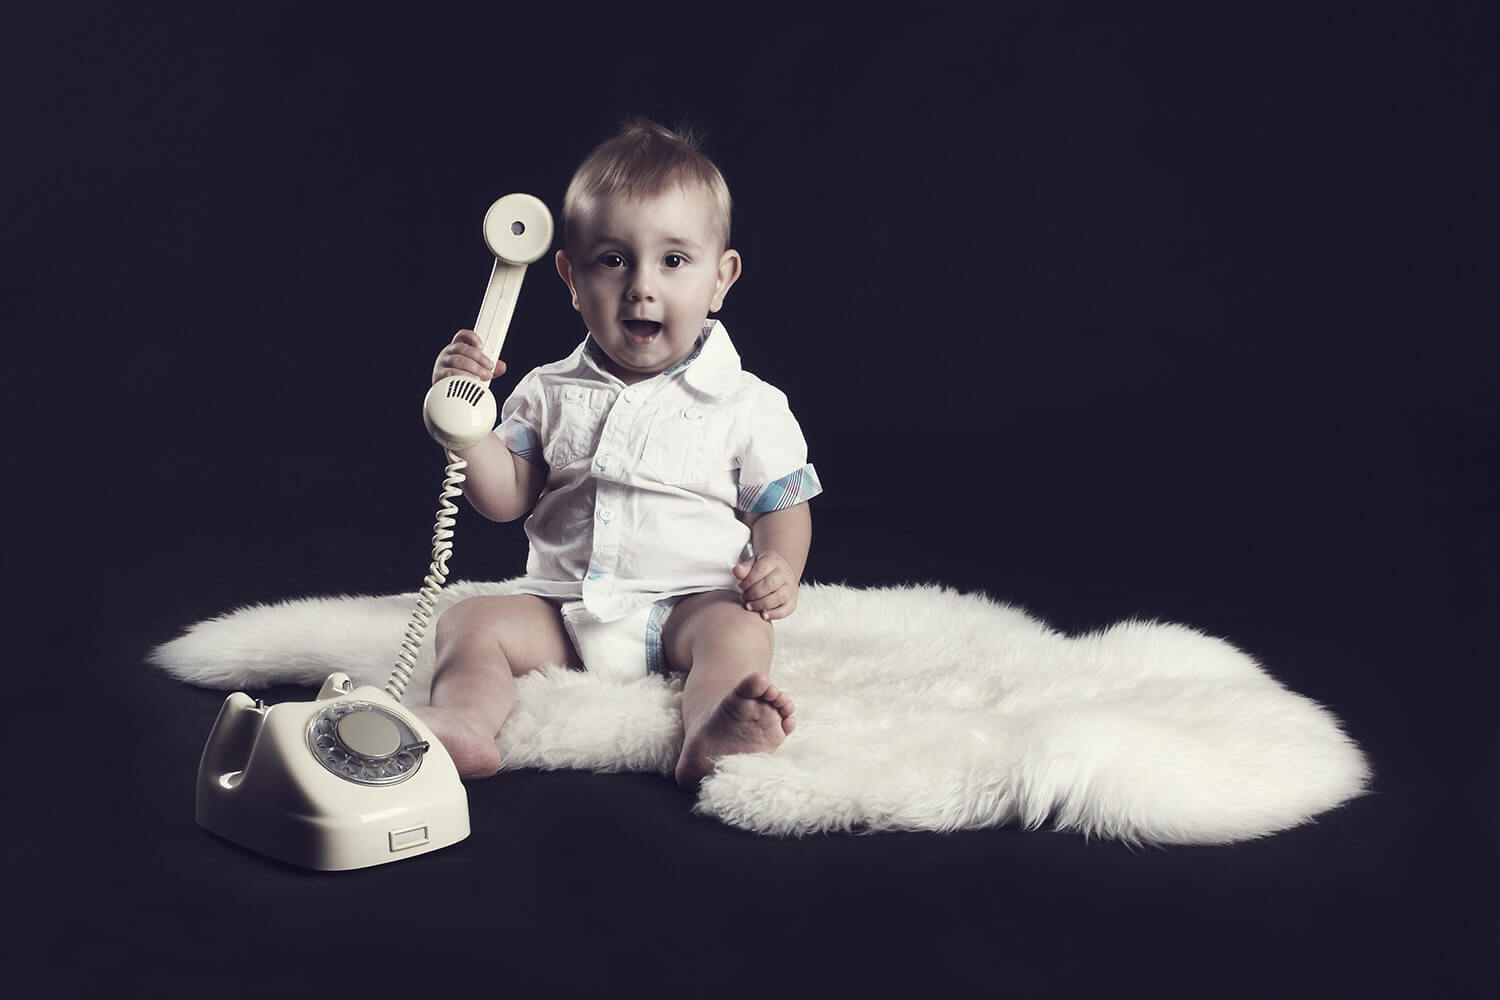 Family photo of a toddler on a fur and with an old phone on a dark background